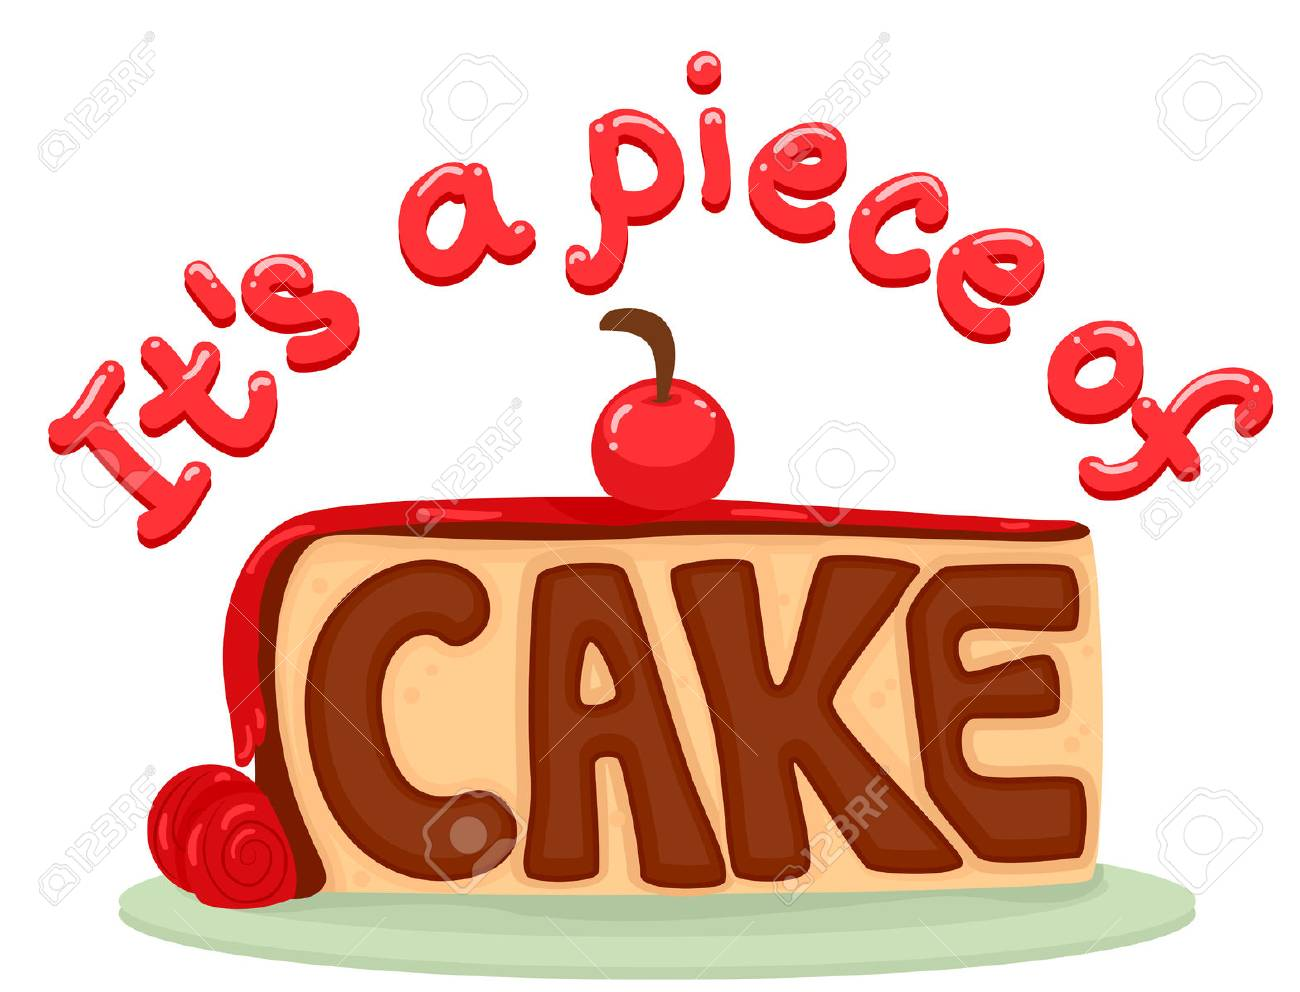 Illustration - Typography Illustration Featuring a Slice of Cake with the  Idiom Piece of Cake